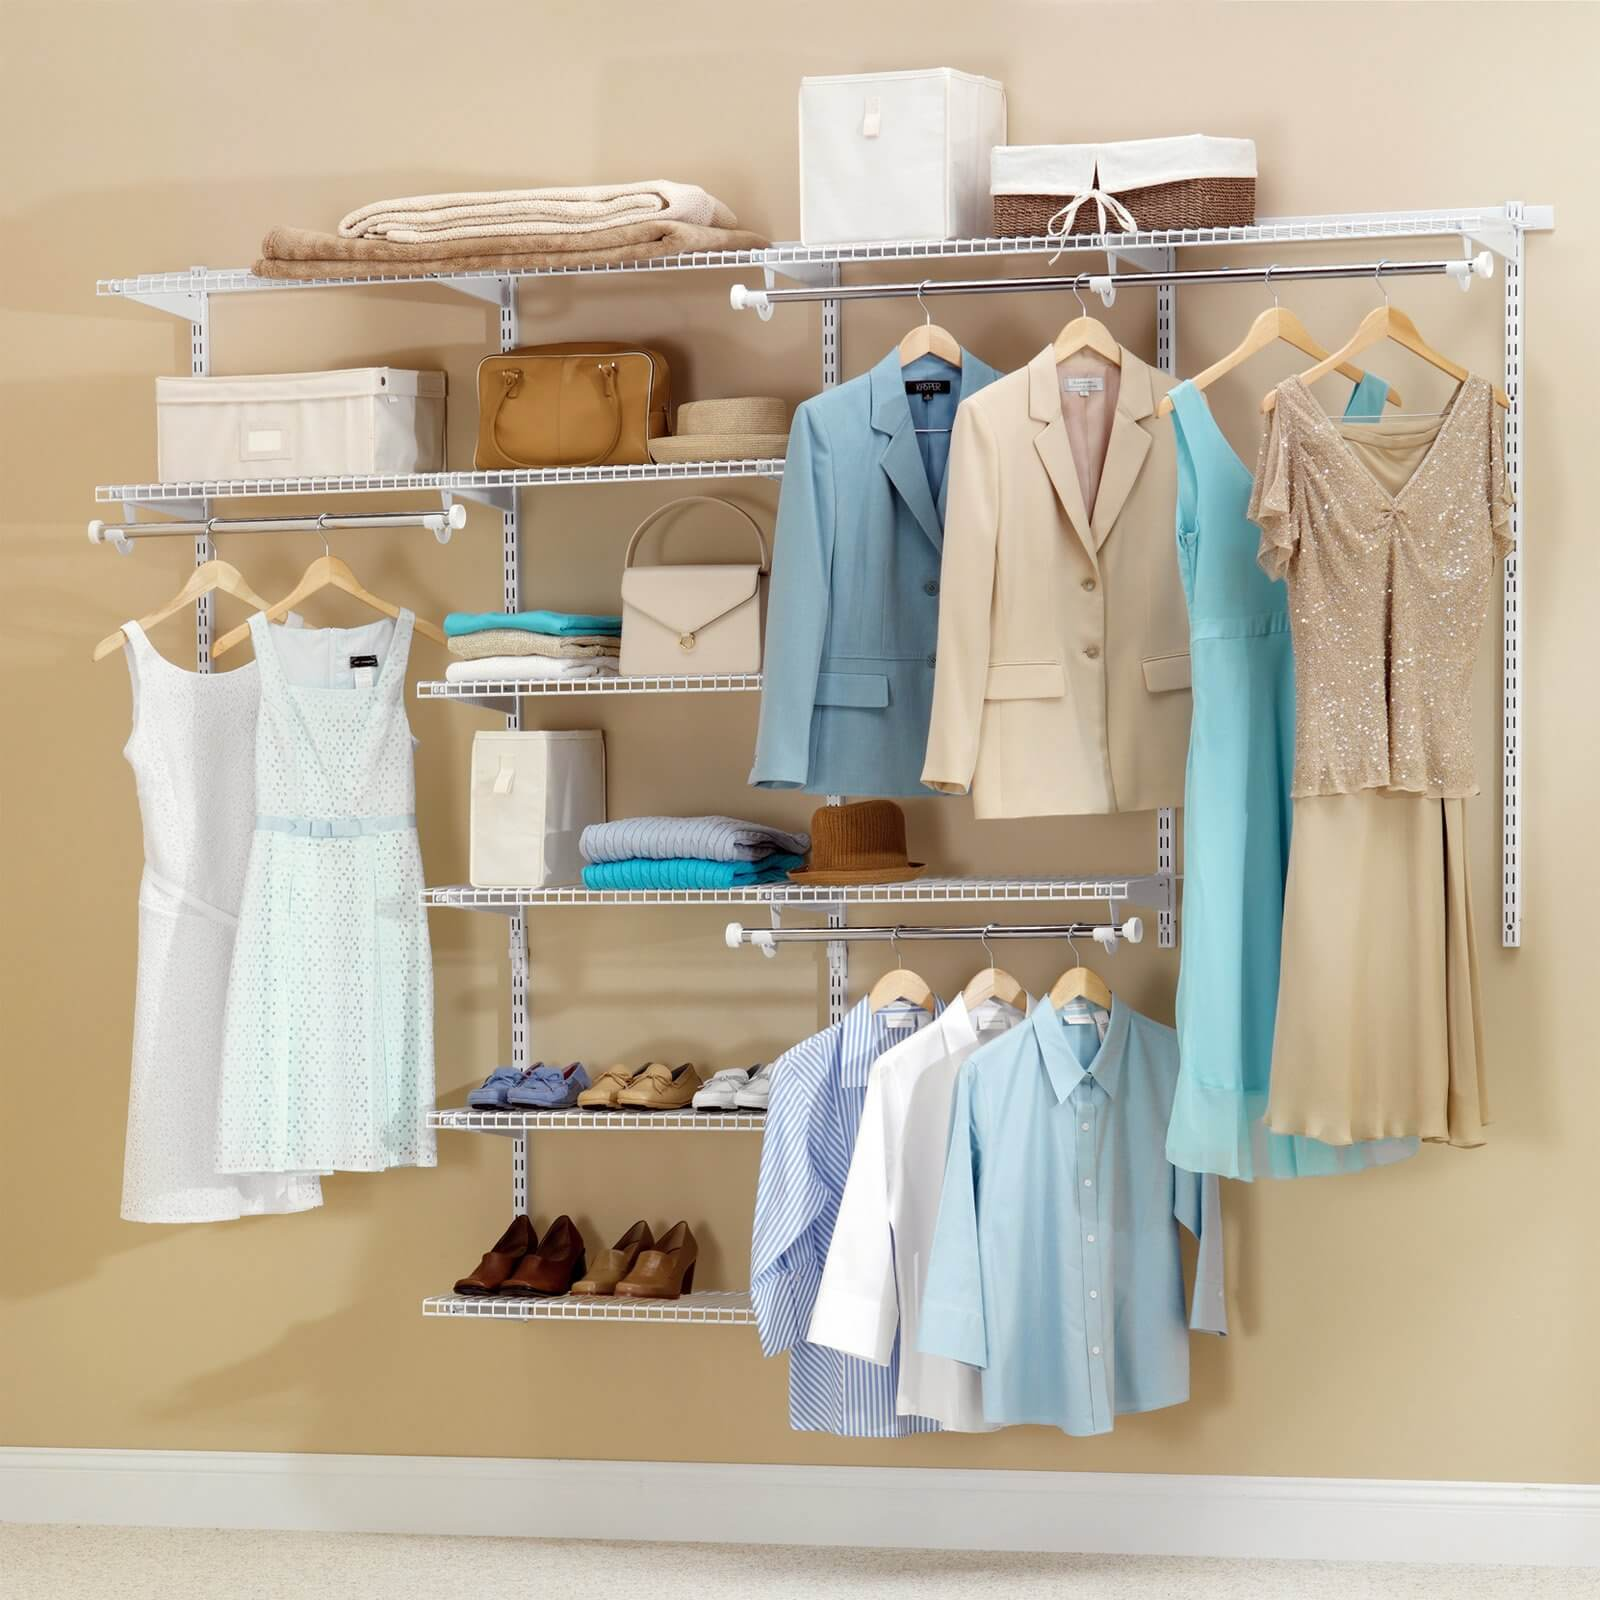 This full closet system has spots for dresses, jackets, shirts, shoes, and bags.